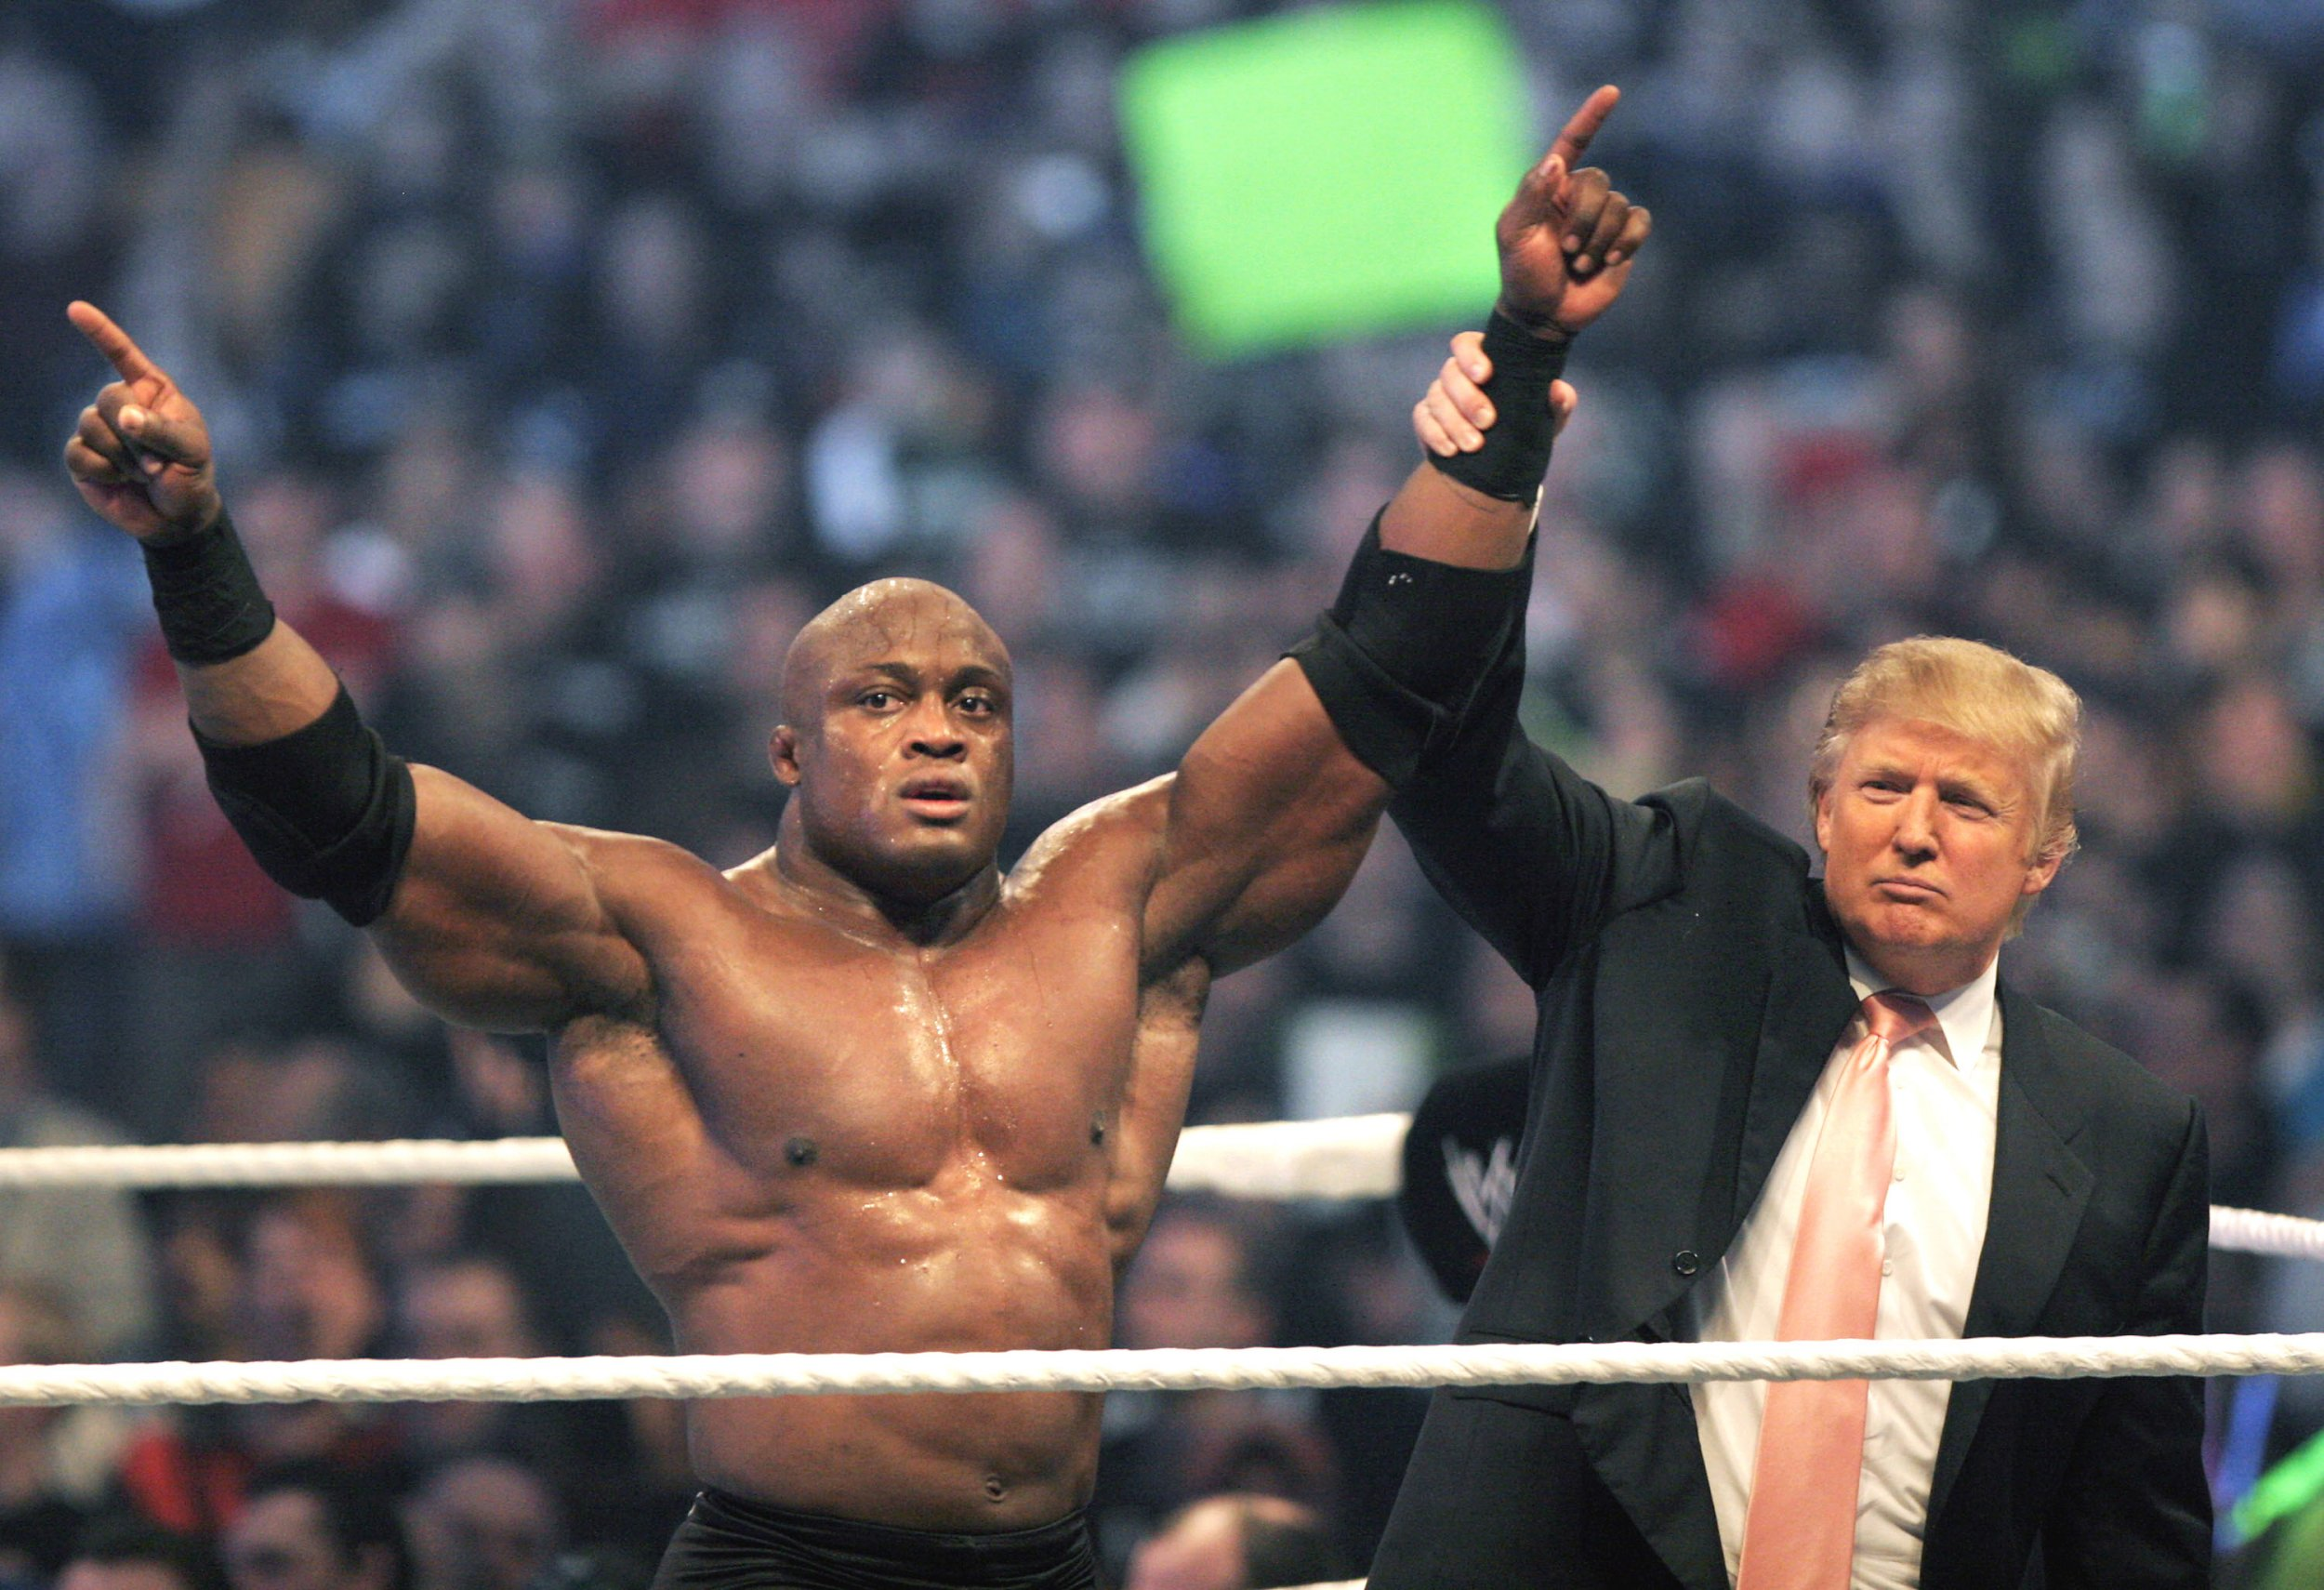 Bobby Lashley and Donald Trump